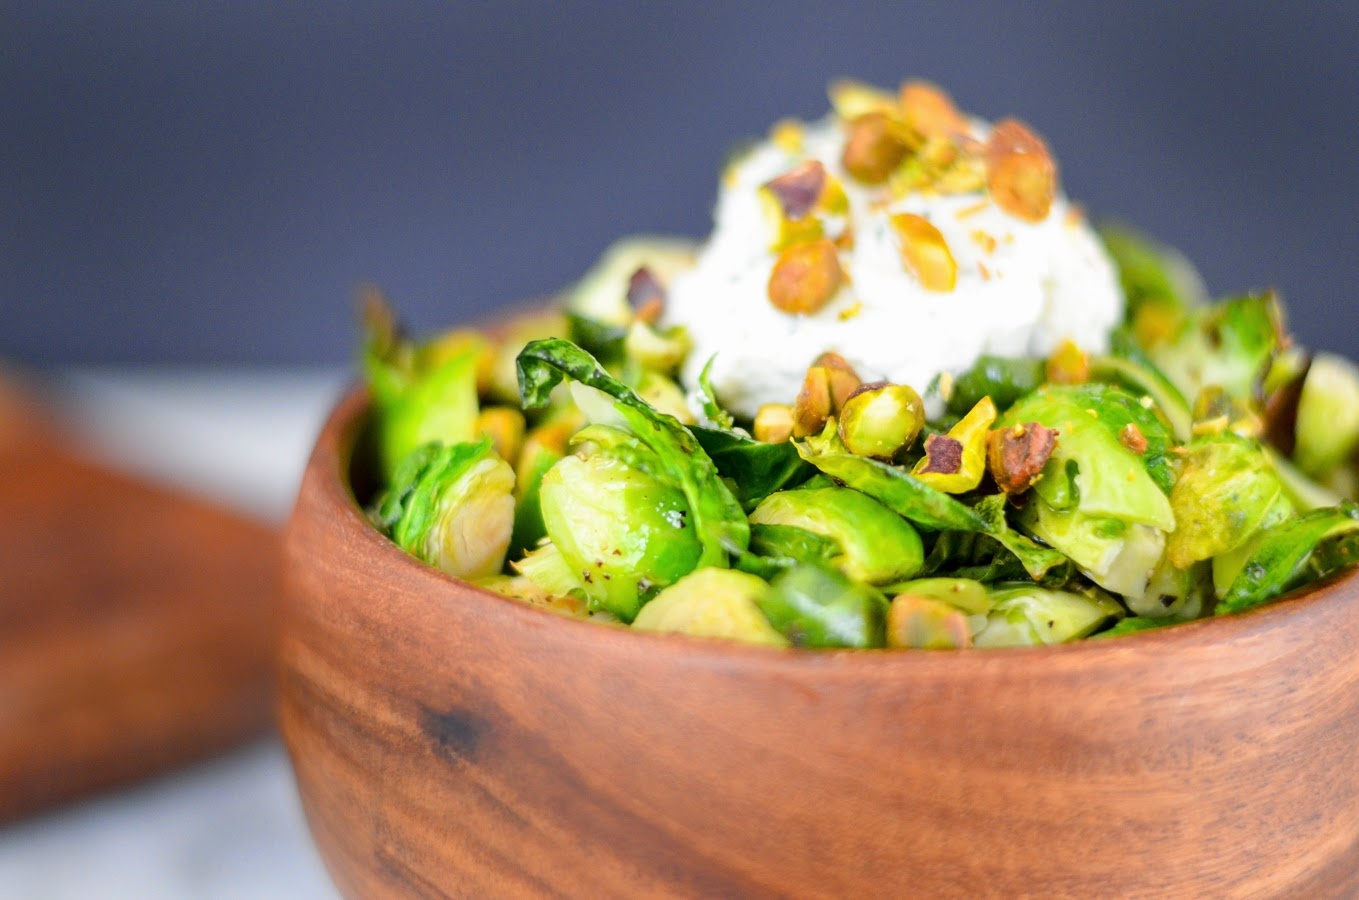 How to Make Delicious Roasted Brussel Sprouts without the Bitter Flavor | @lucismorsels